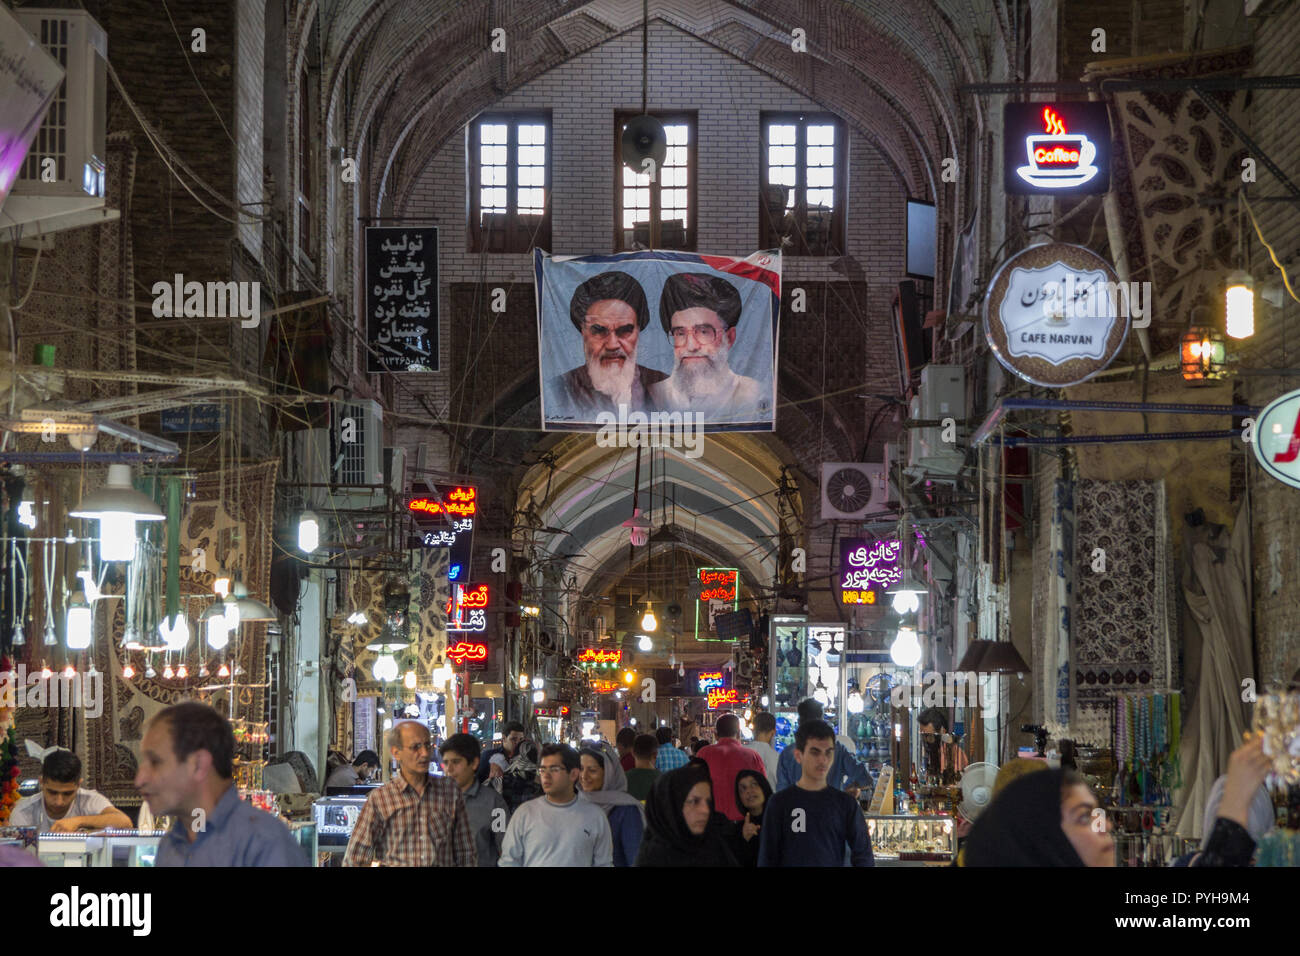 ISFAHAN, IRAN - AUGUST 8, 2018: Street of the Isfahan bazarw ith the portraits of the 2 Supreme leaders of the Islamic Republic of Iran, Ali Khamenei  Stock Photo